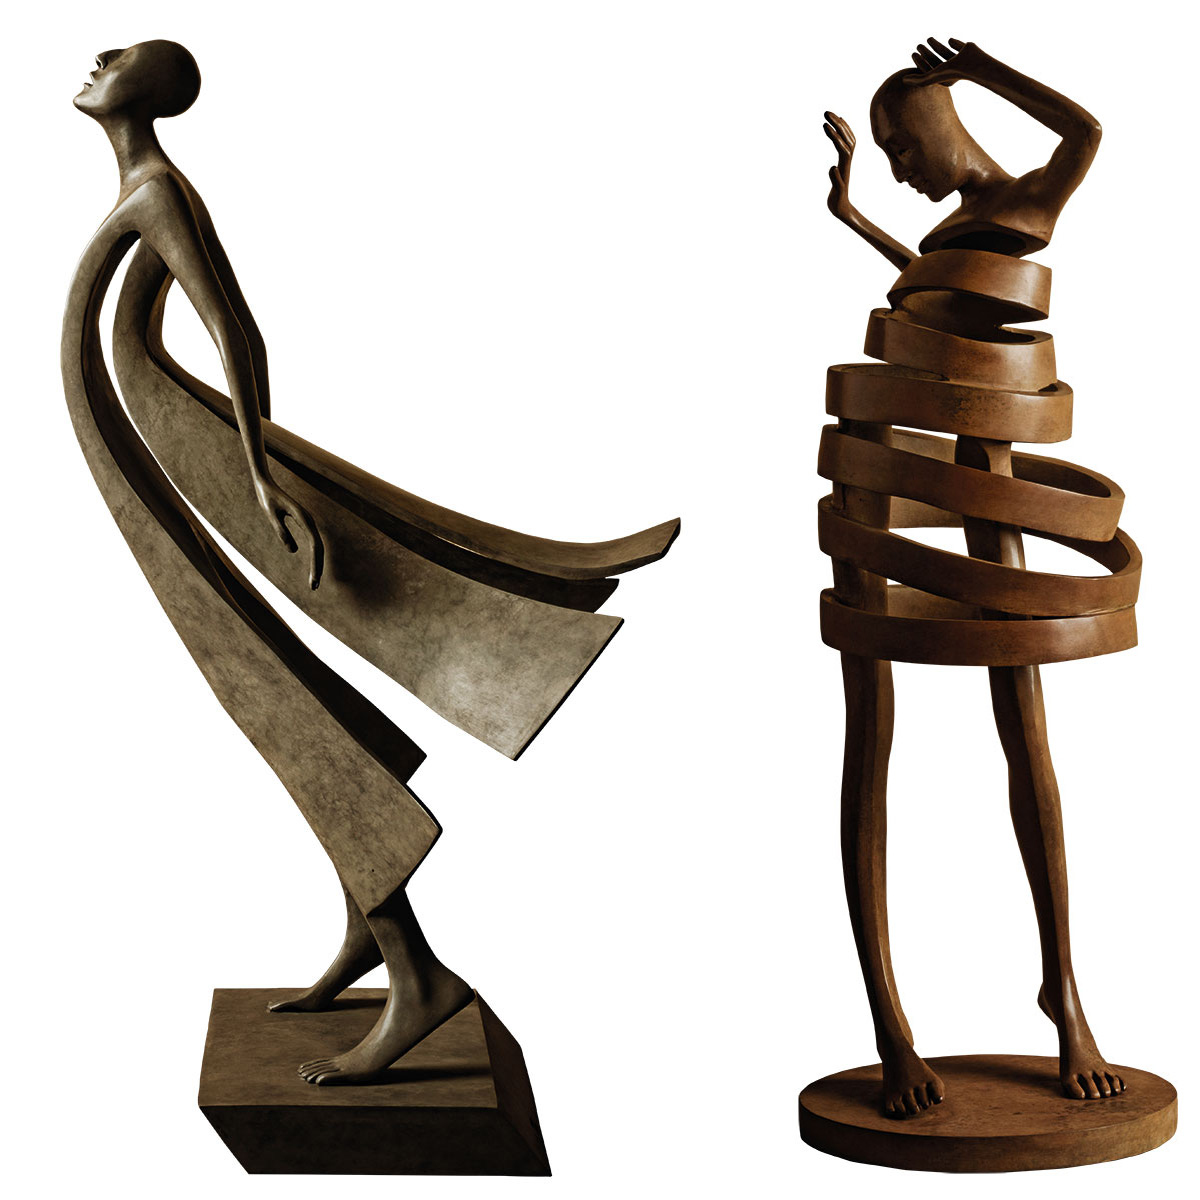 Twisting Bronze Figural Sculptures by Isabel Miramontes